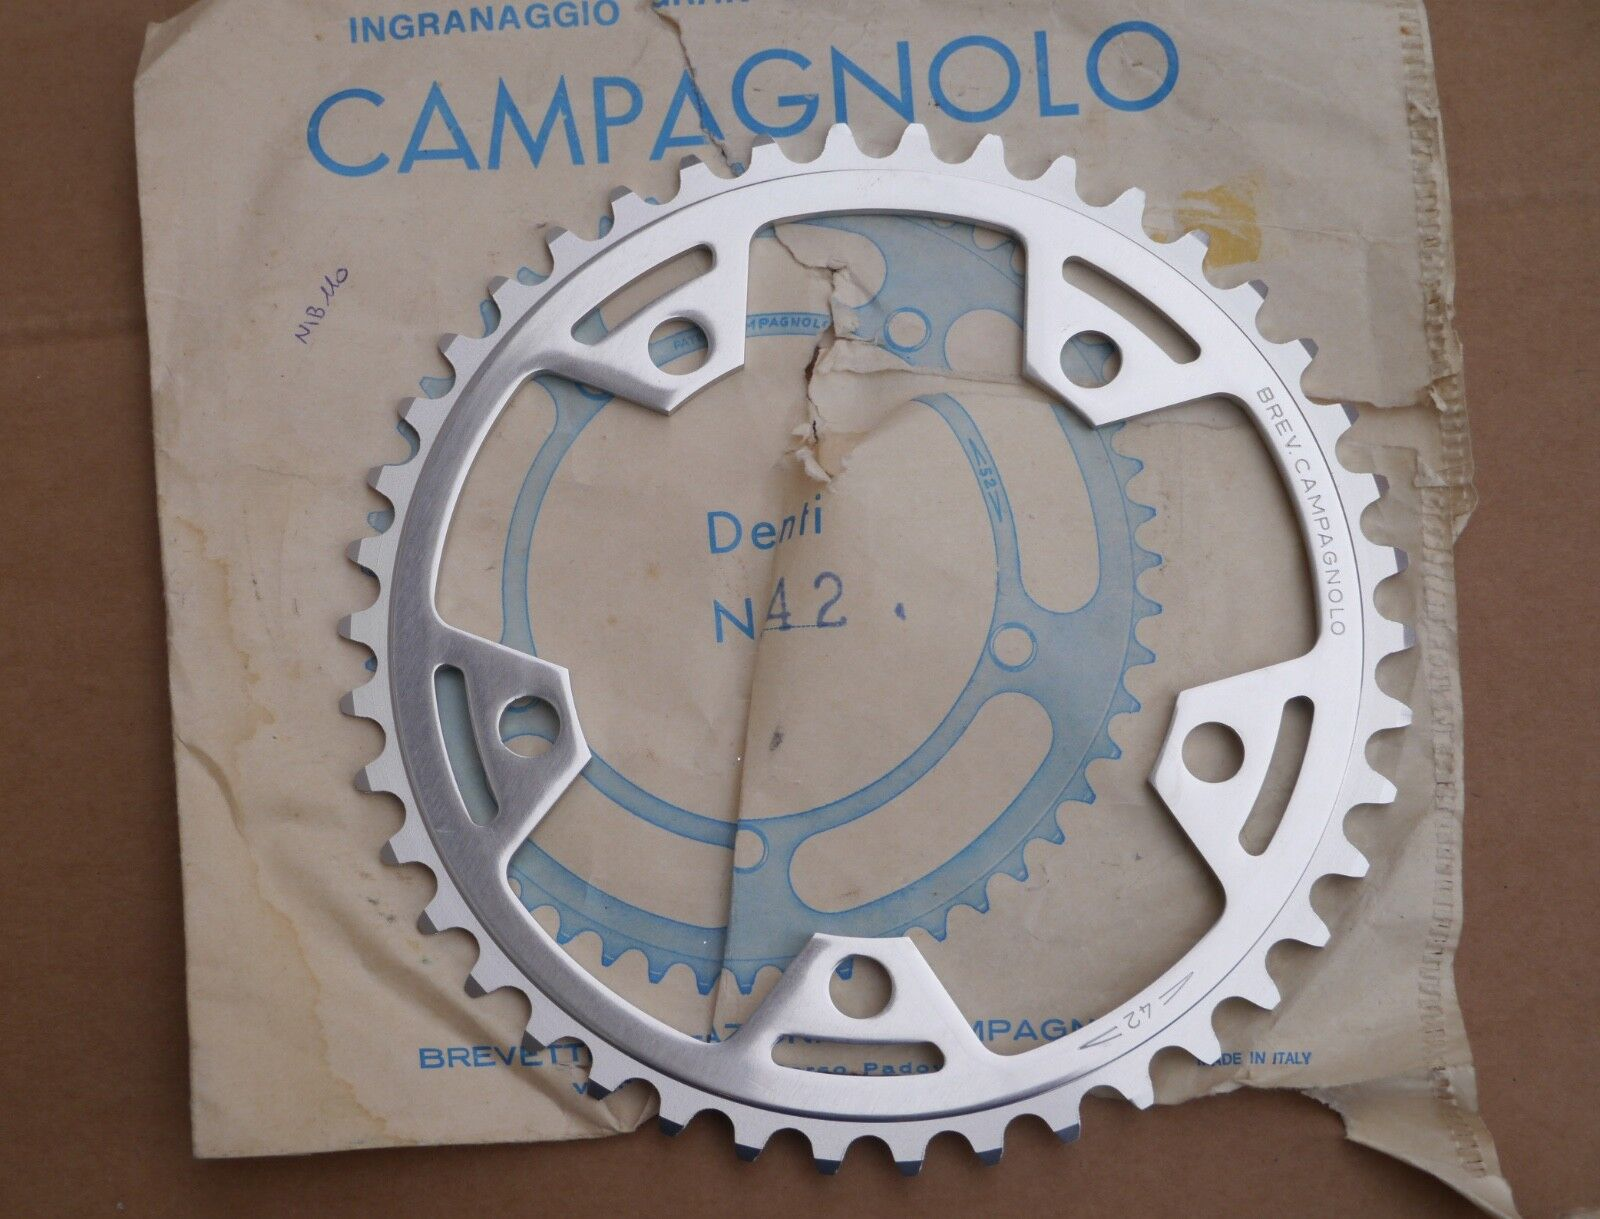 NIB Campagnolo  Victory Triomphe road bike inner chainring, 42t  outlet online store